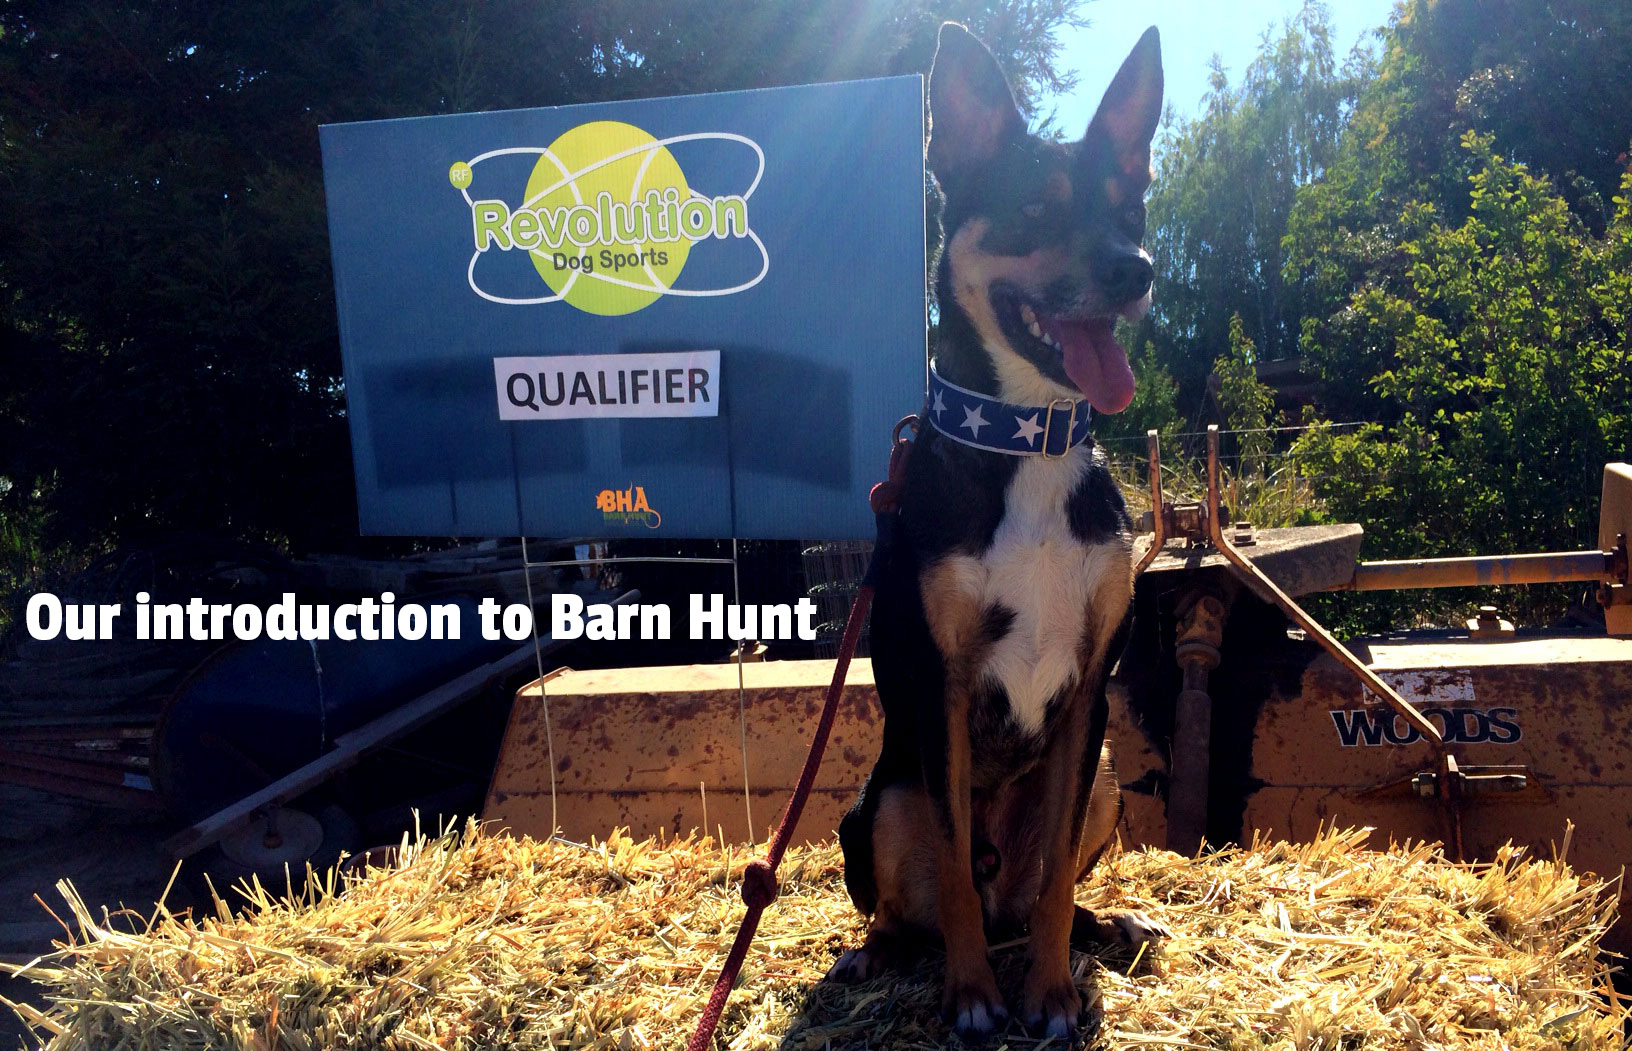 Our introduction to and observations about Barn Hunt: Training Tips Tuesday